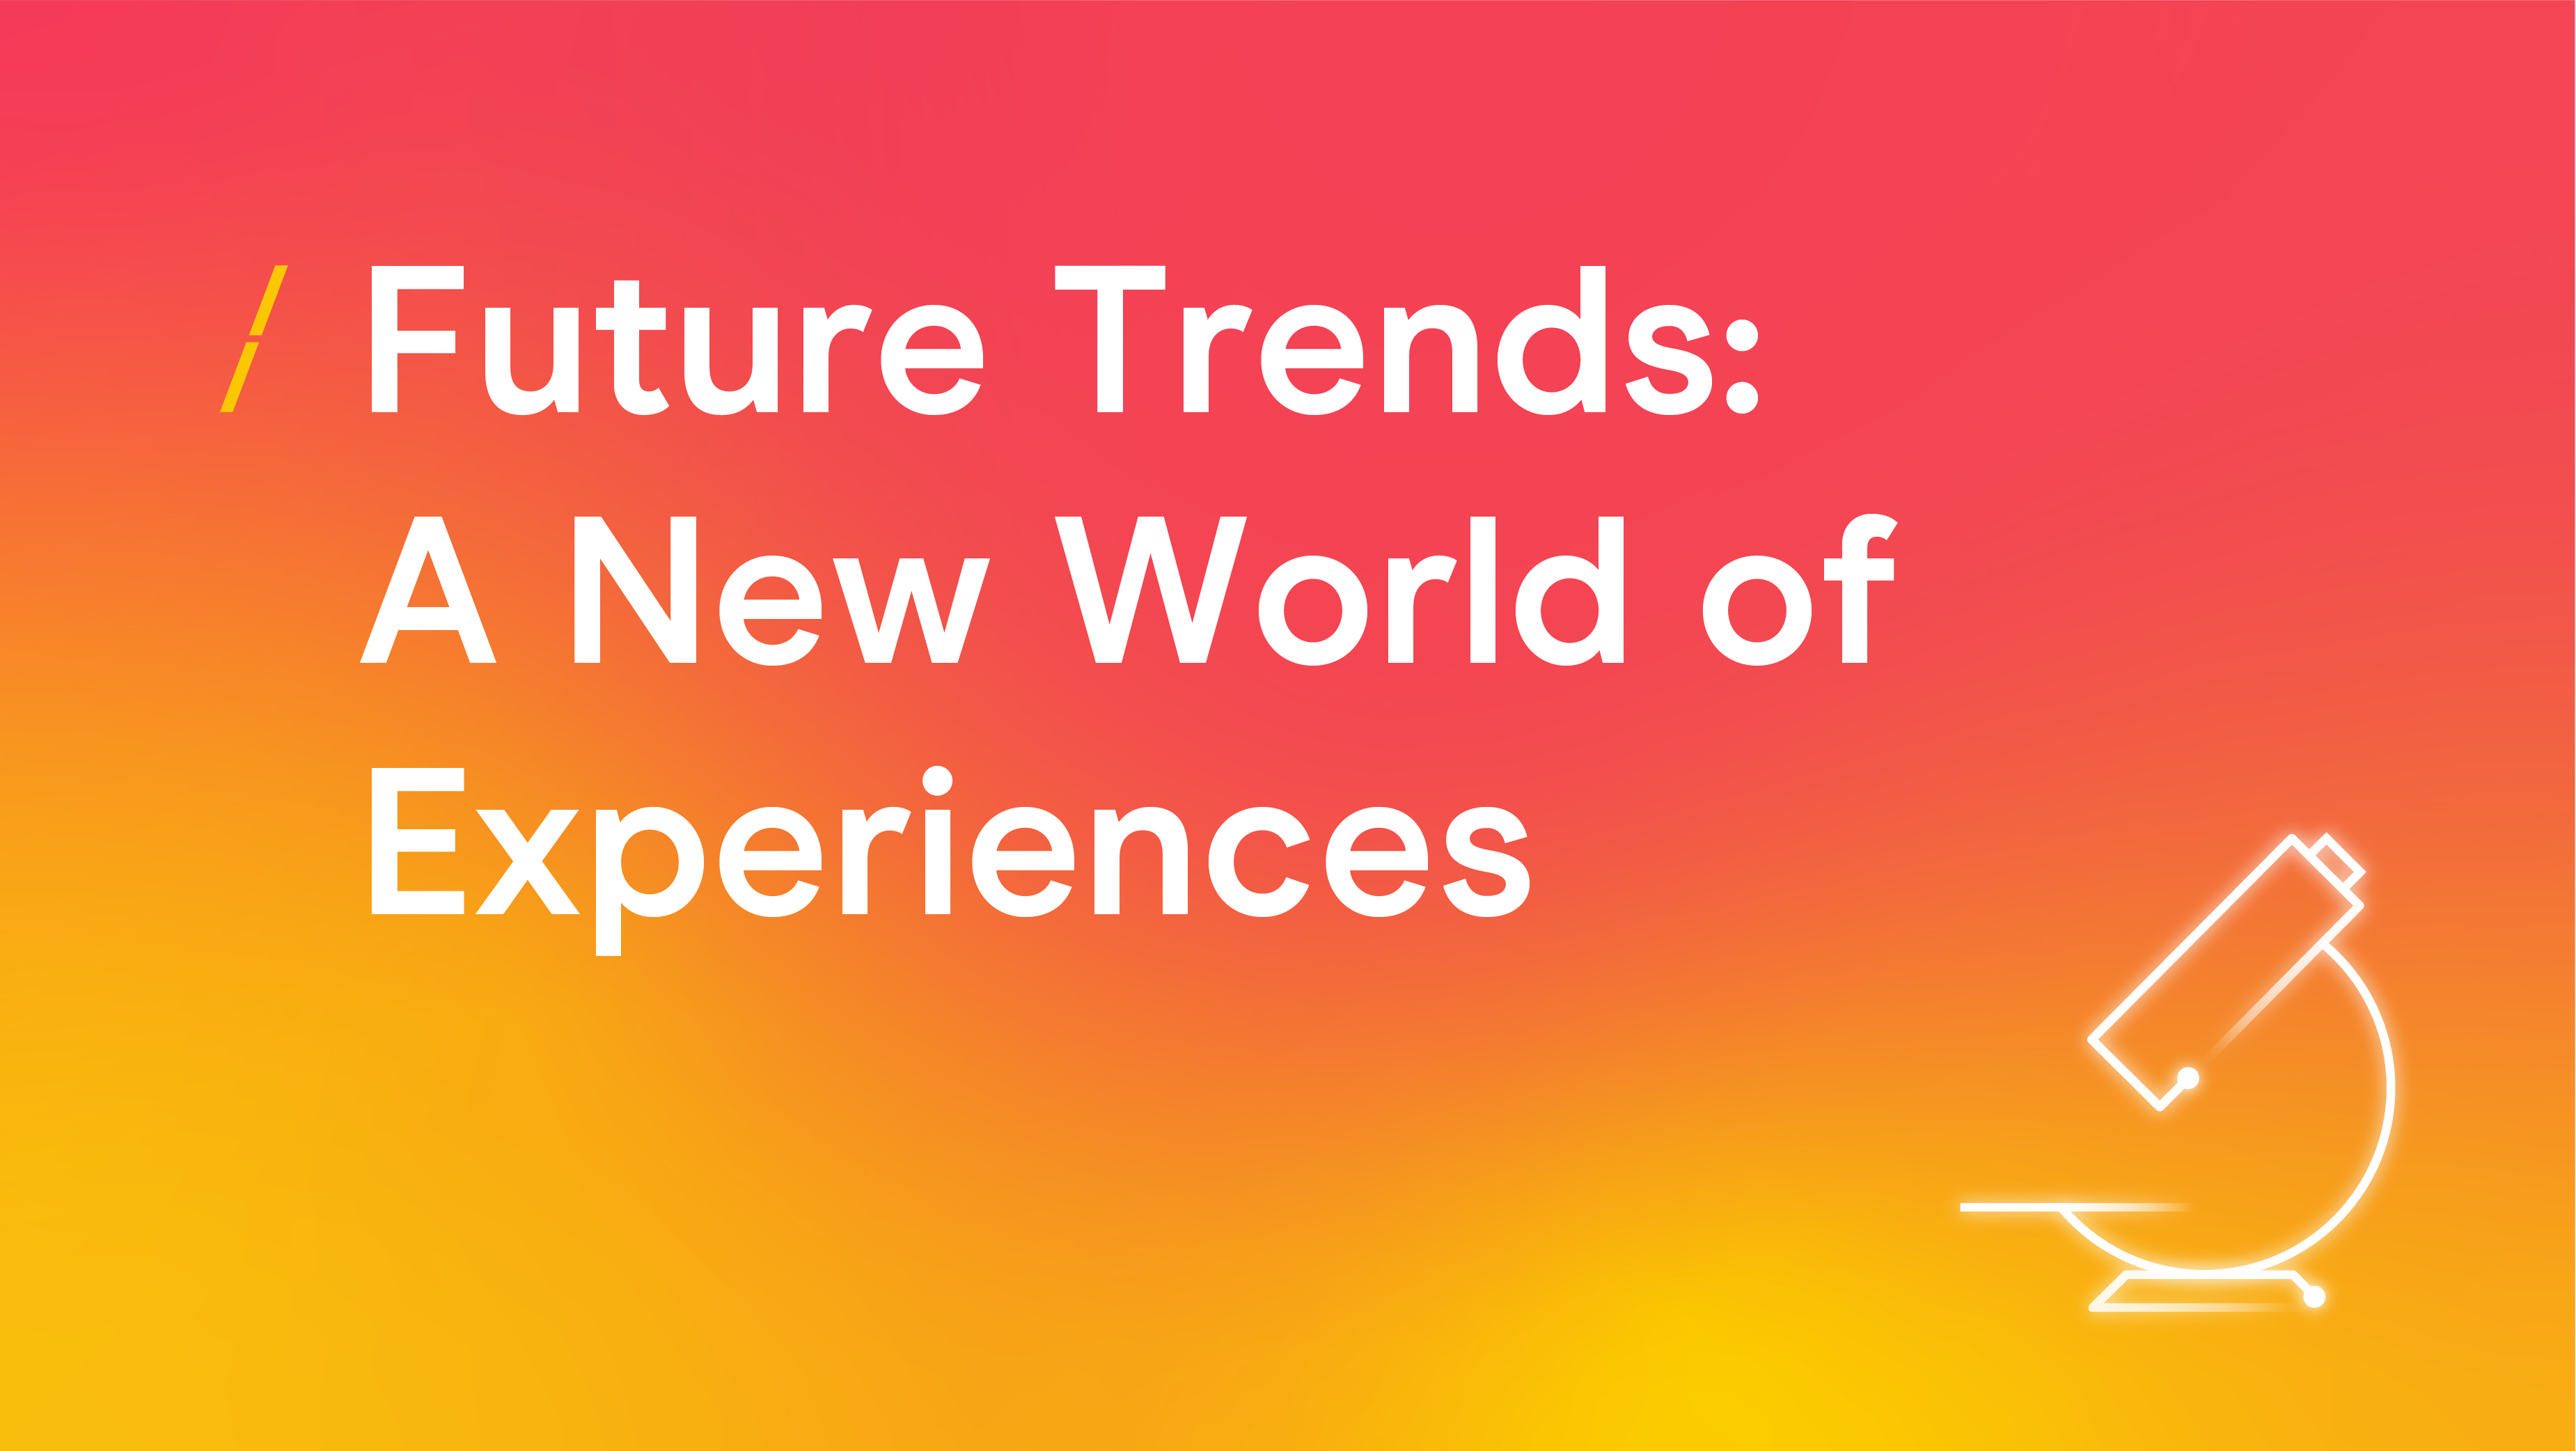 Future Trends- A New World of Experiences_Research articles copy.jpg